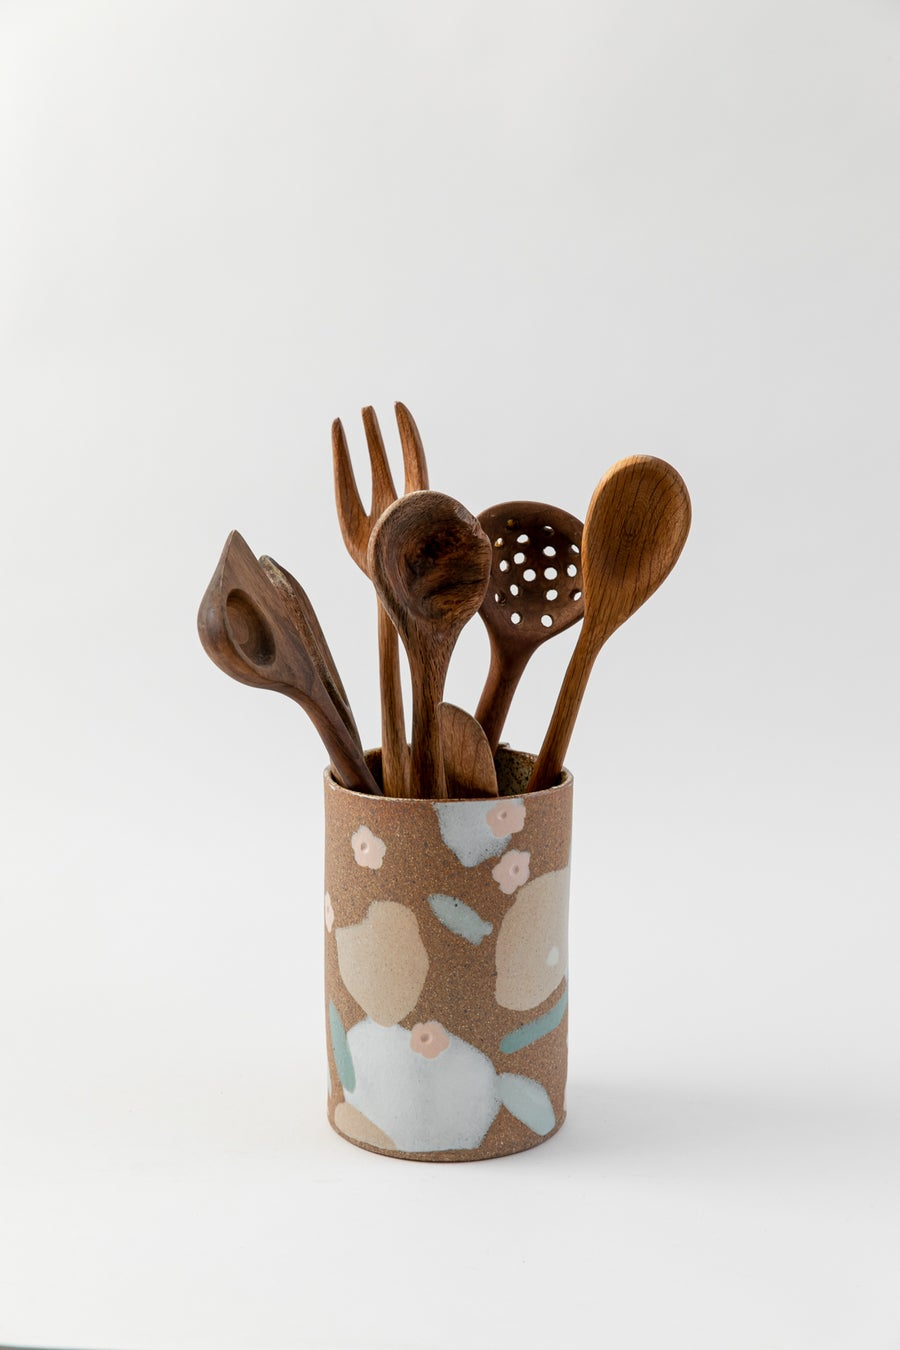 Image of Large Utensil Holder - Desert Sand, Peach Flowers and Sage Leaves